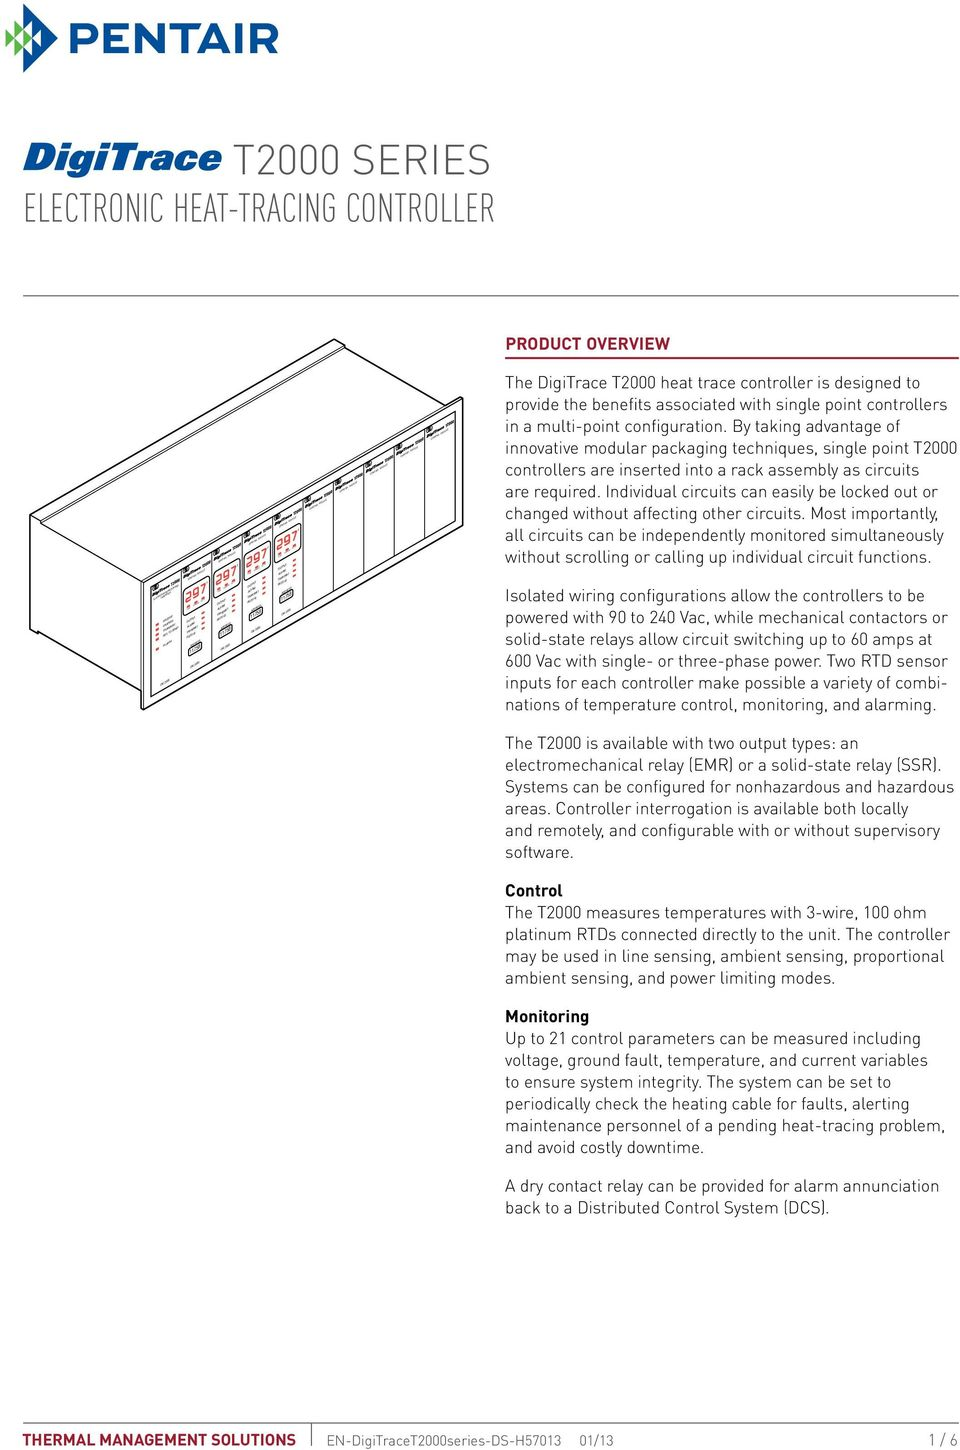 Thermal Management Solutions Pdf The I O Insulation Element Of Affected Solidstate Relays Circuit By Taking Advantage Innovative Modular Packaging Techniques Single Point Controllers Are Inserted Into A